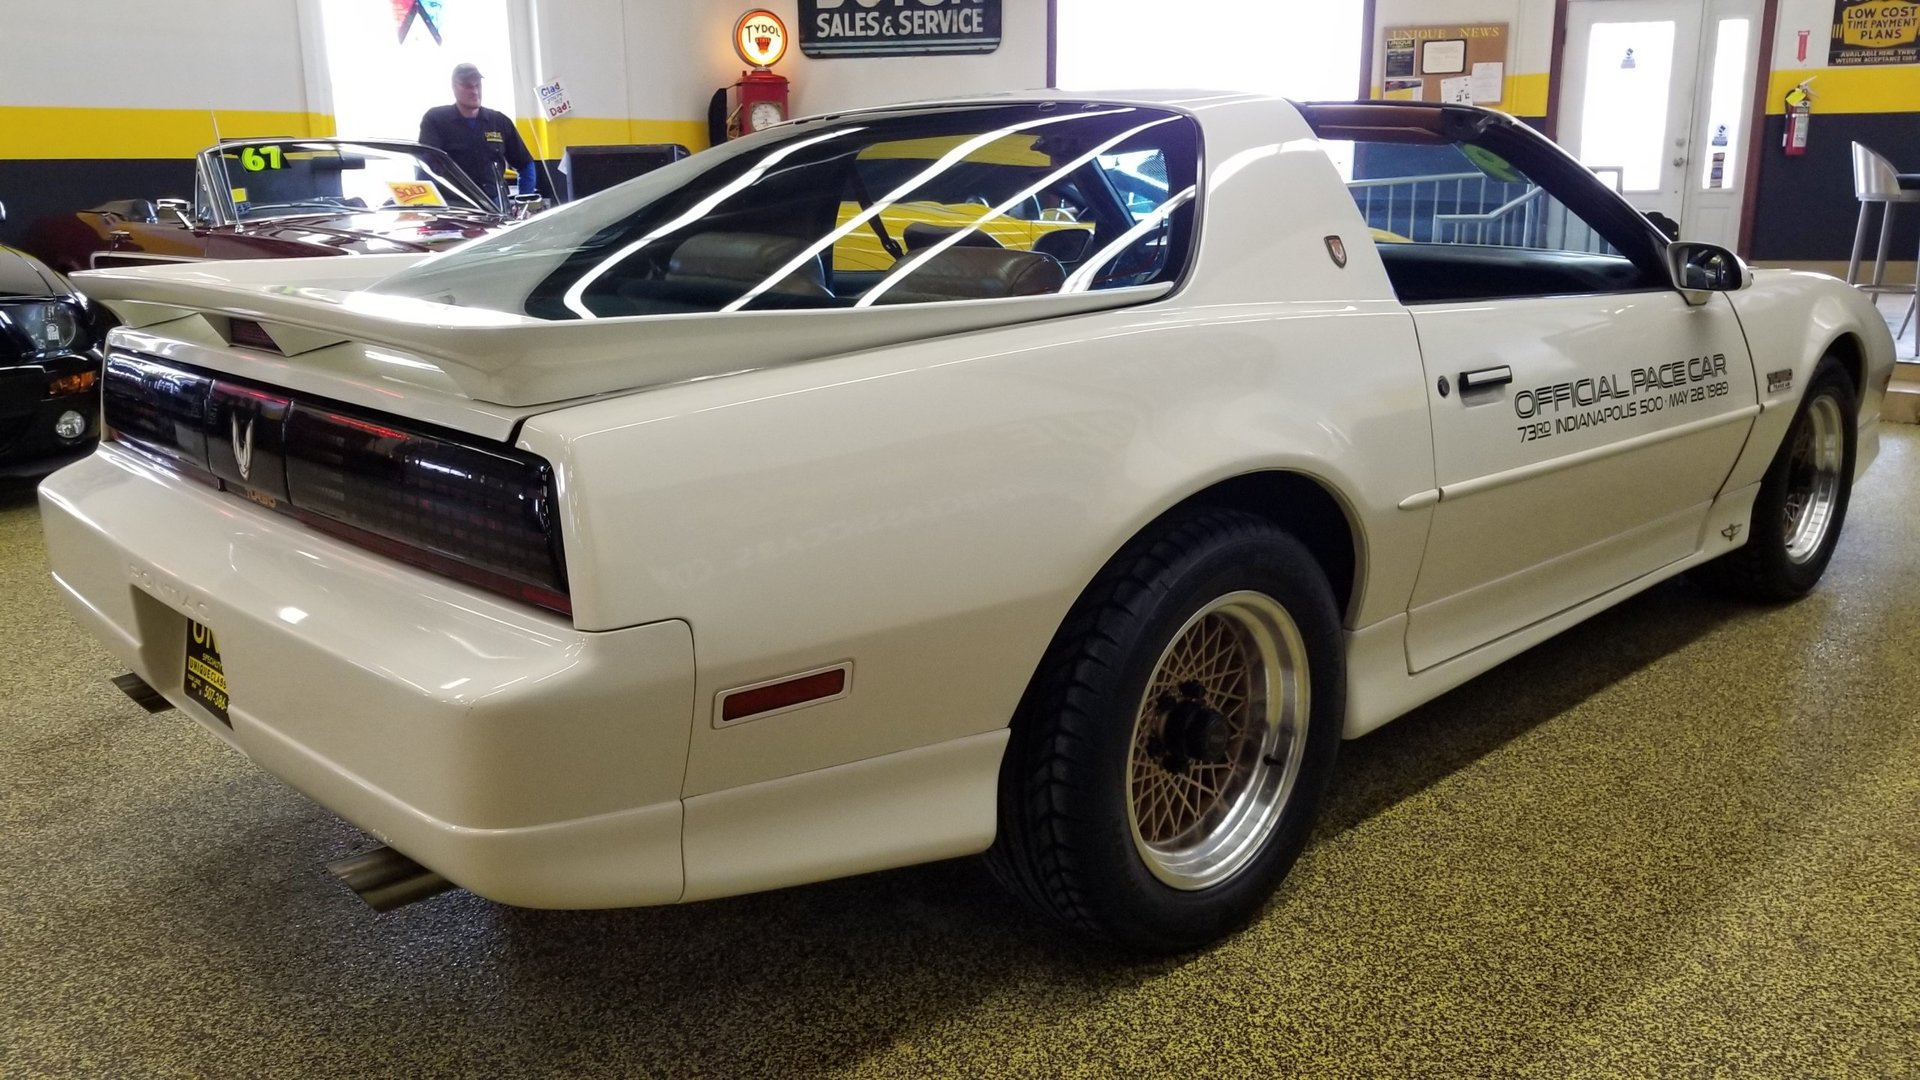 1989 pontiac firebird turbo trans am indy pace car for. Black Bedroom Furniture Sets. Home Design Ideas